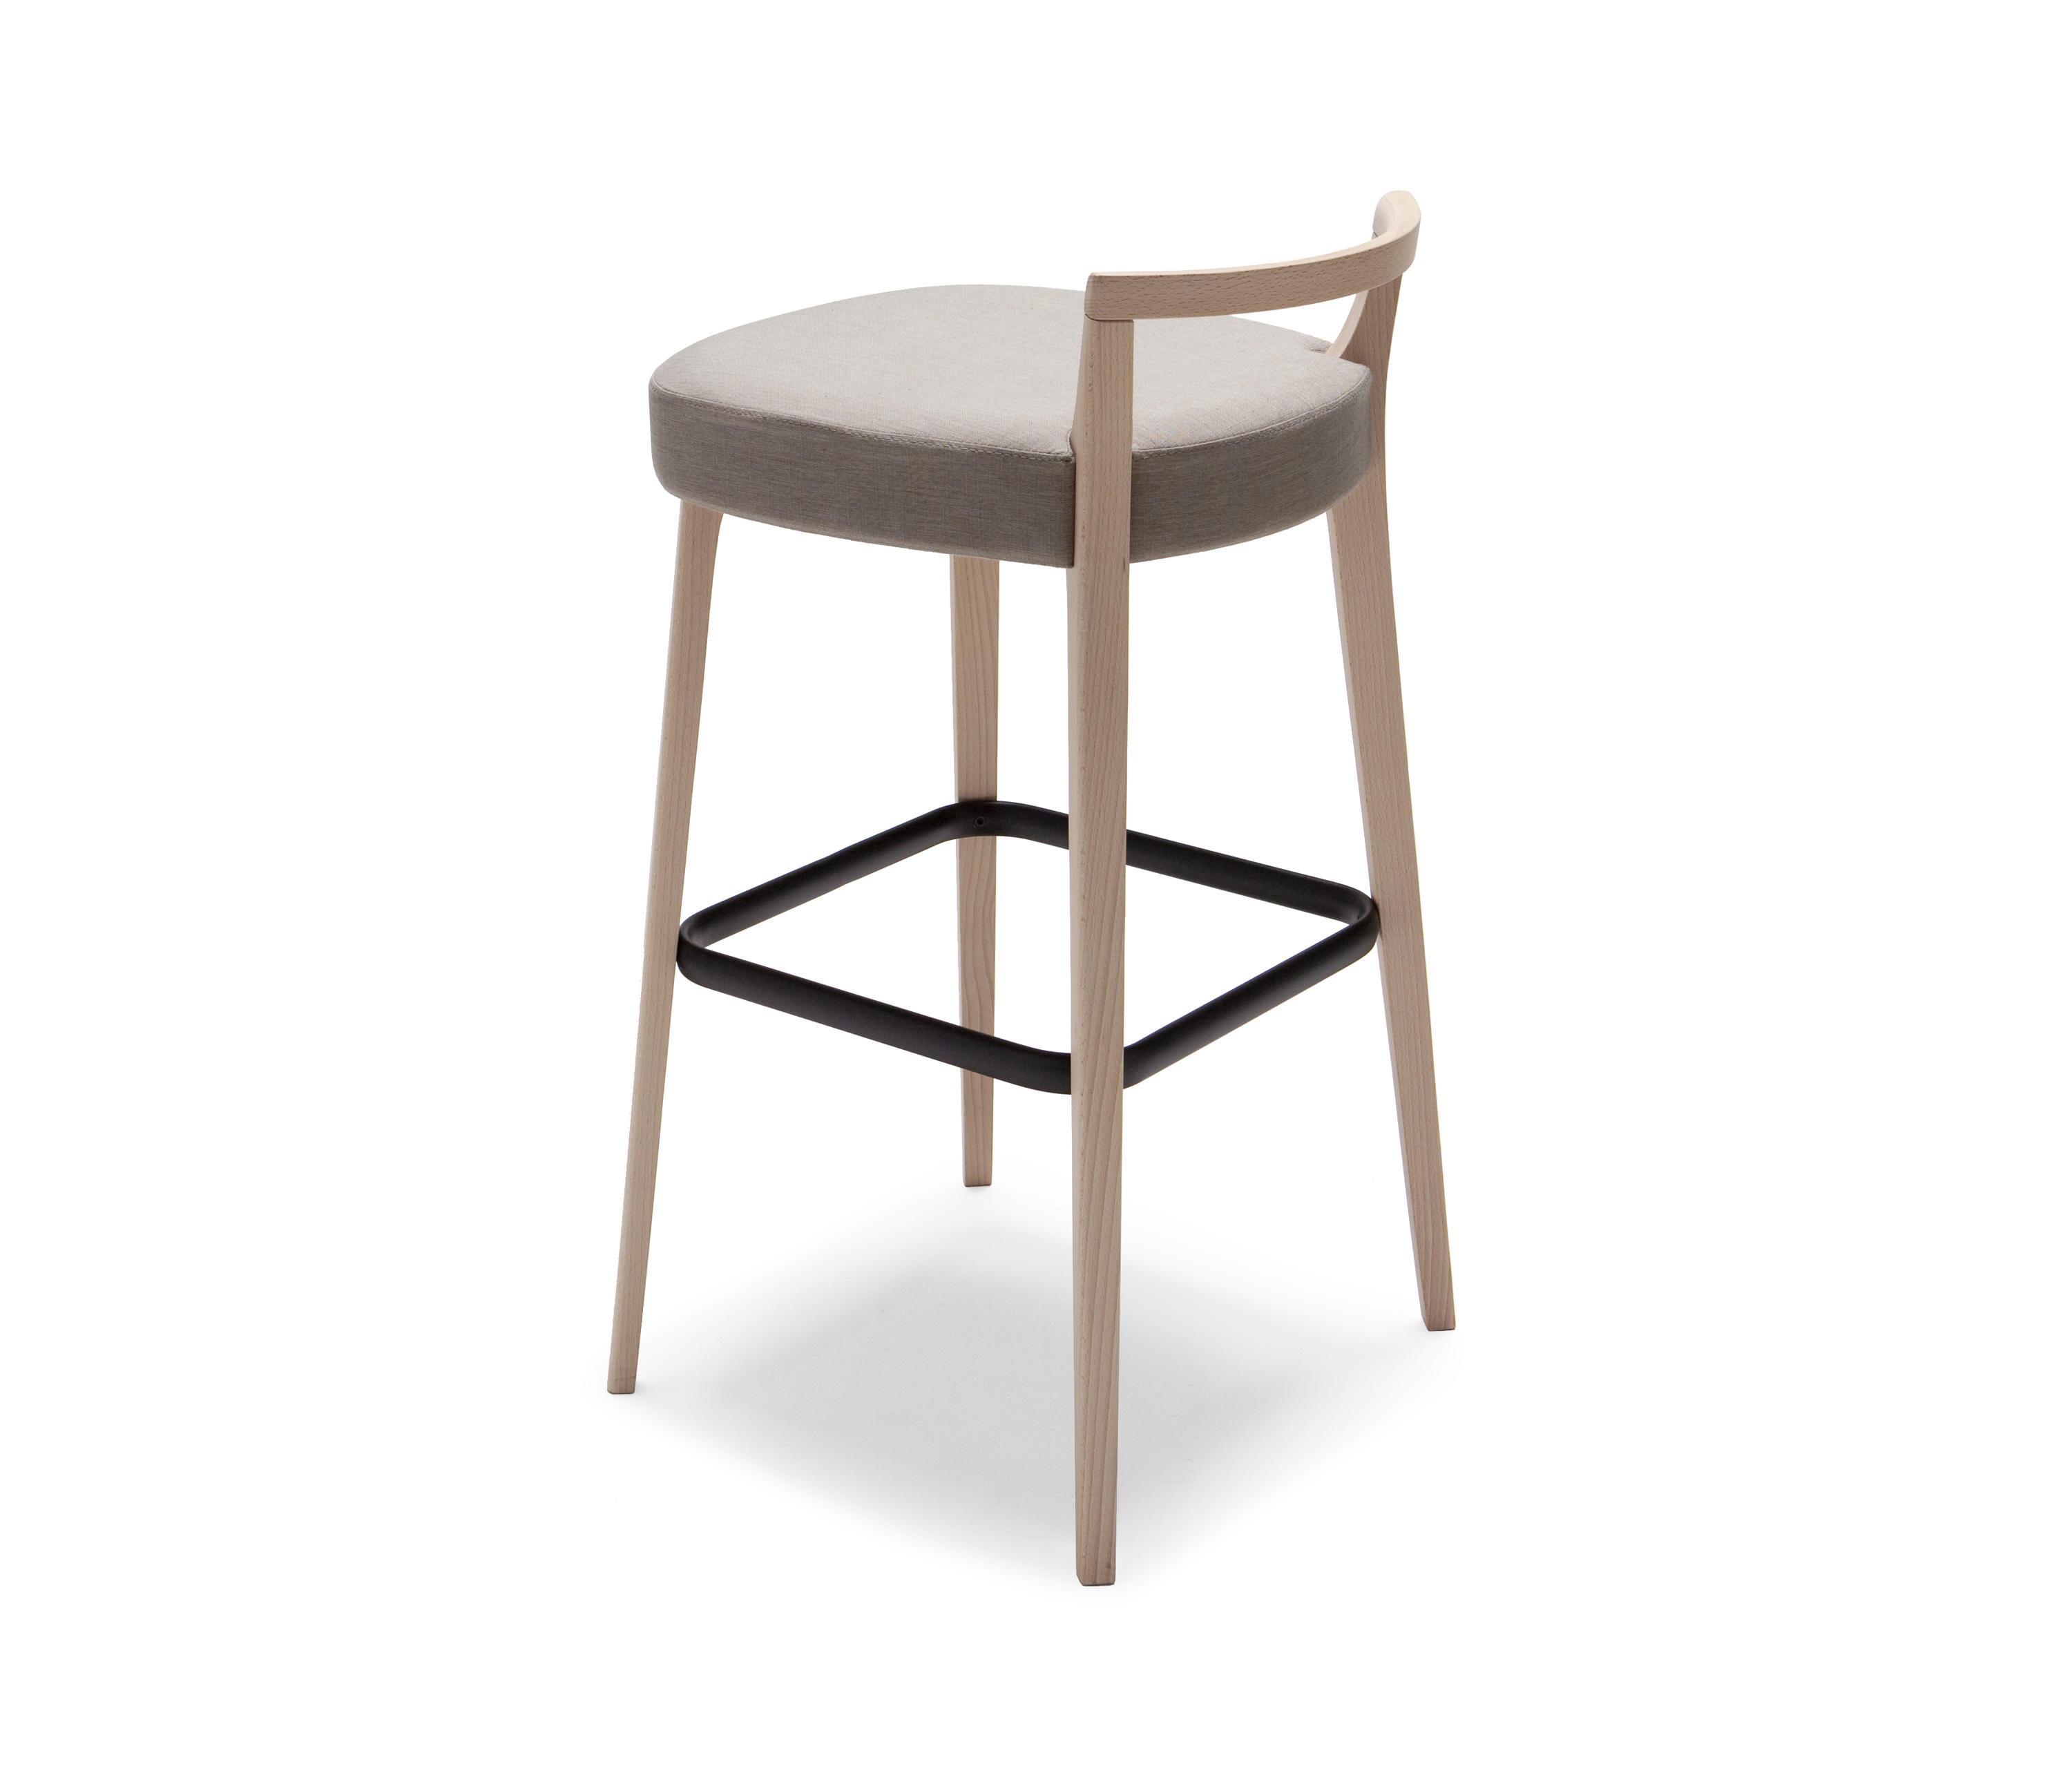 METRO 162 - Bar Stools From ORIGINS 1971